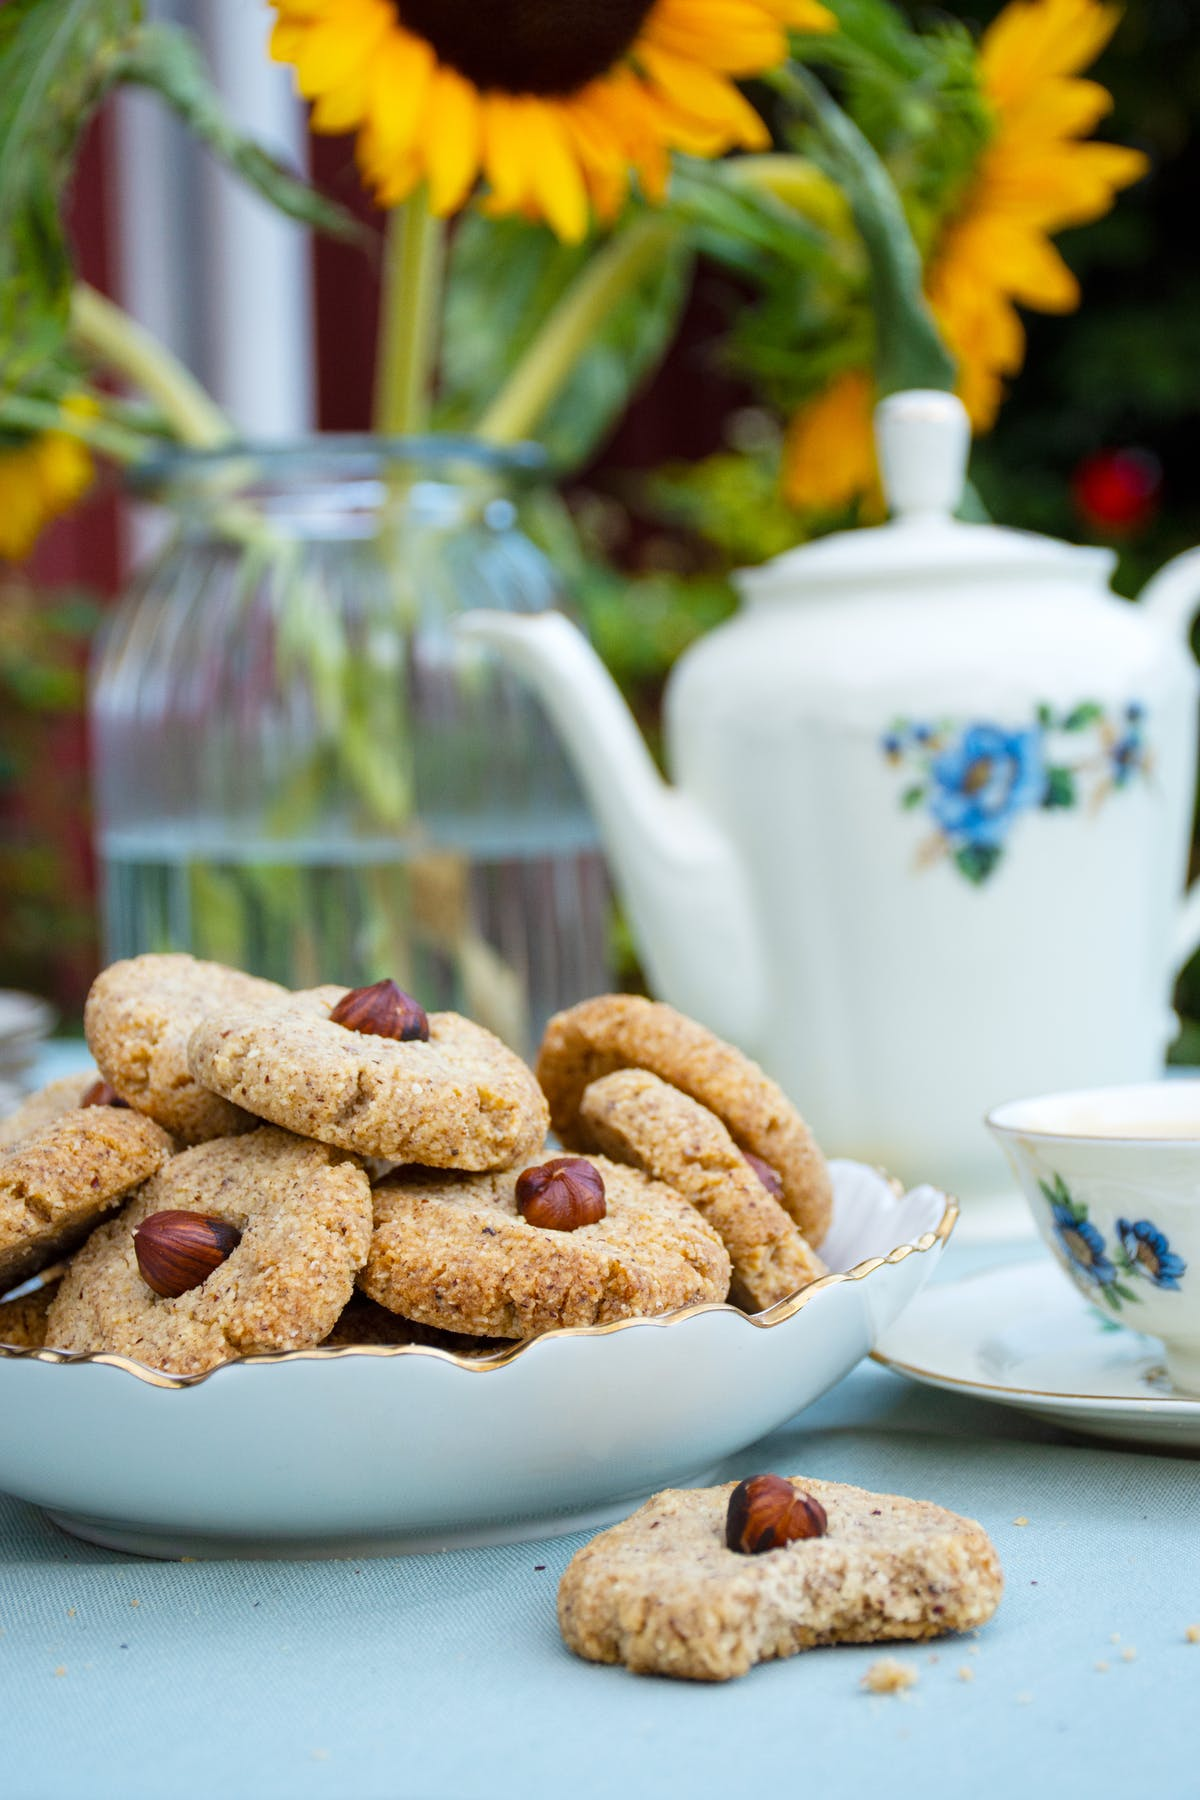 Quick Swedish keto hazelnut cookies